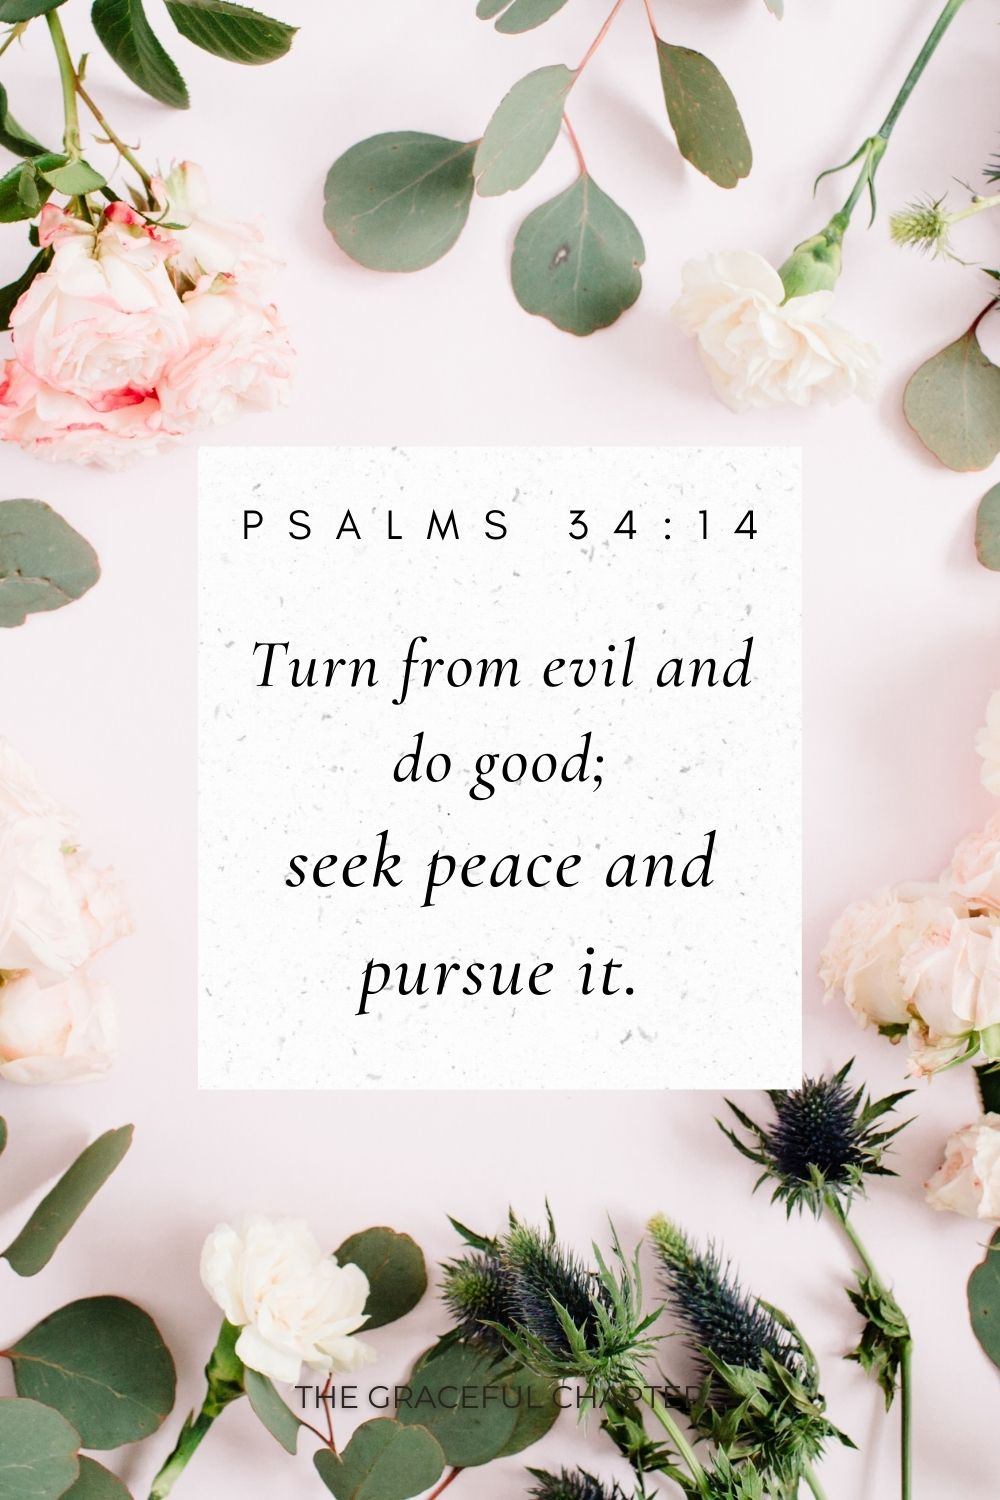 Turn from evil and do good; seek peace and pursue it. Psalms 34:14